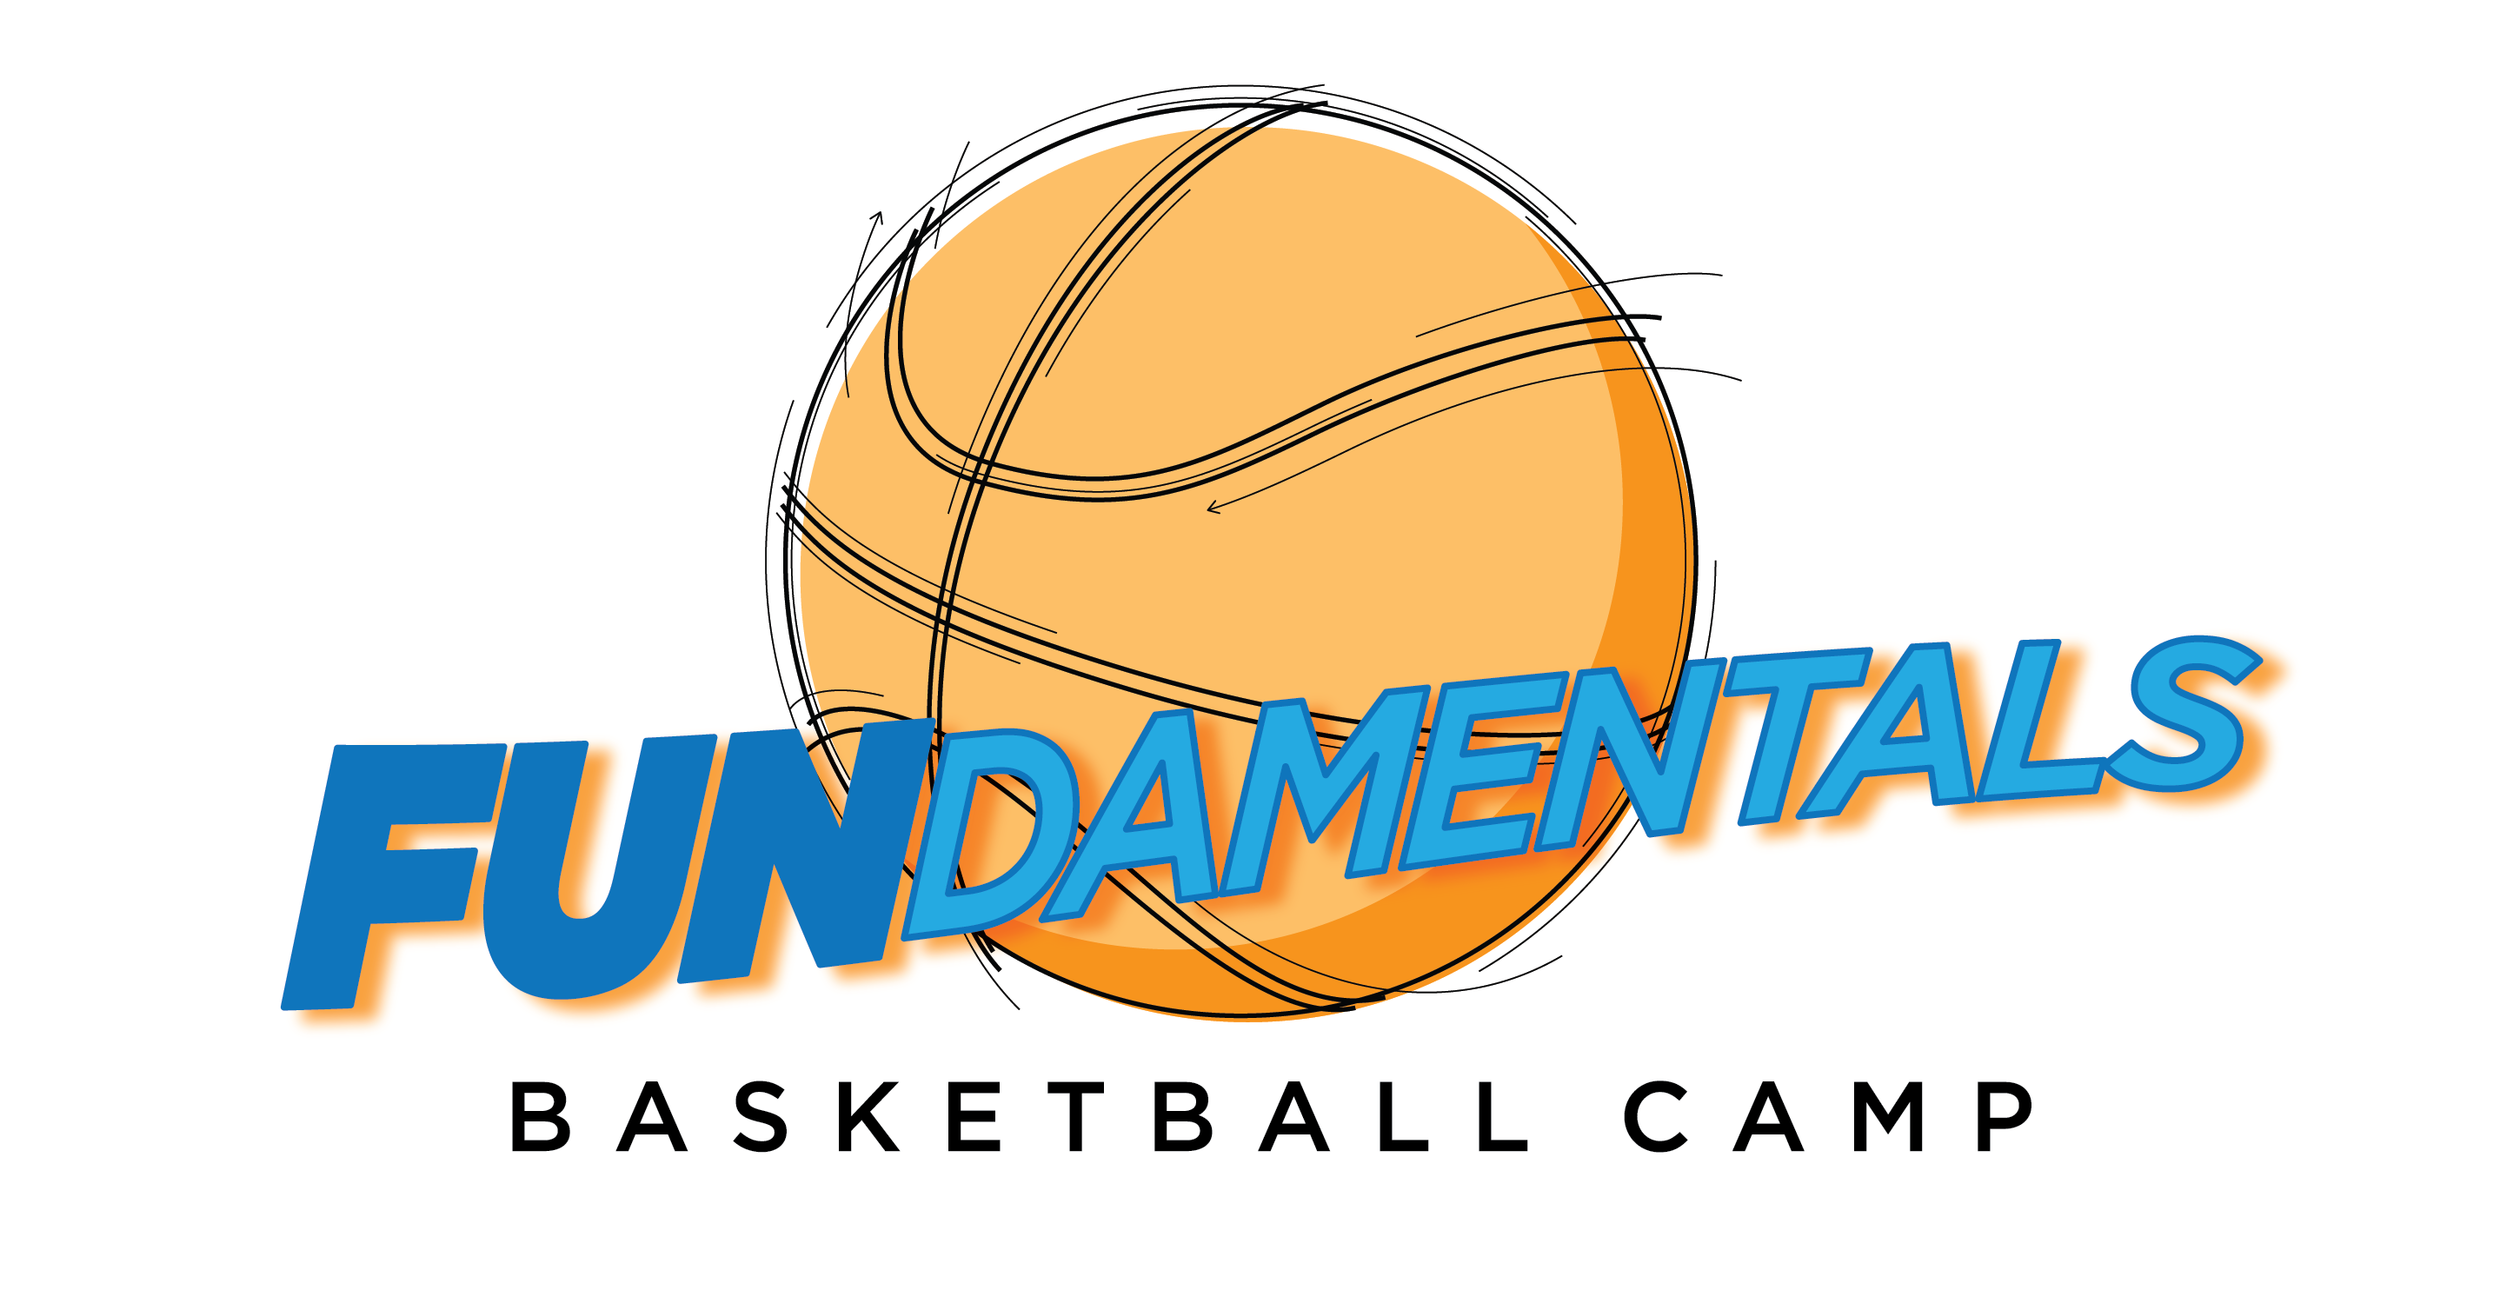 FUNdamentals Basketball Camp